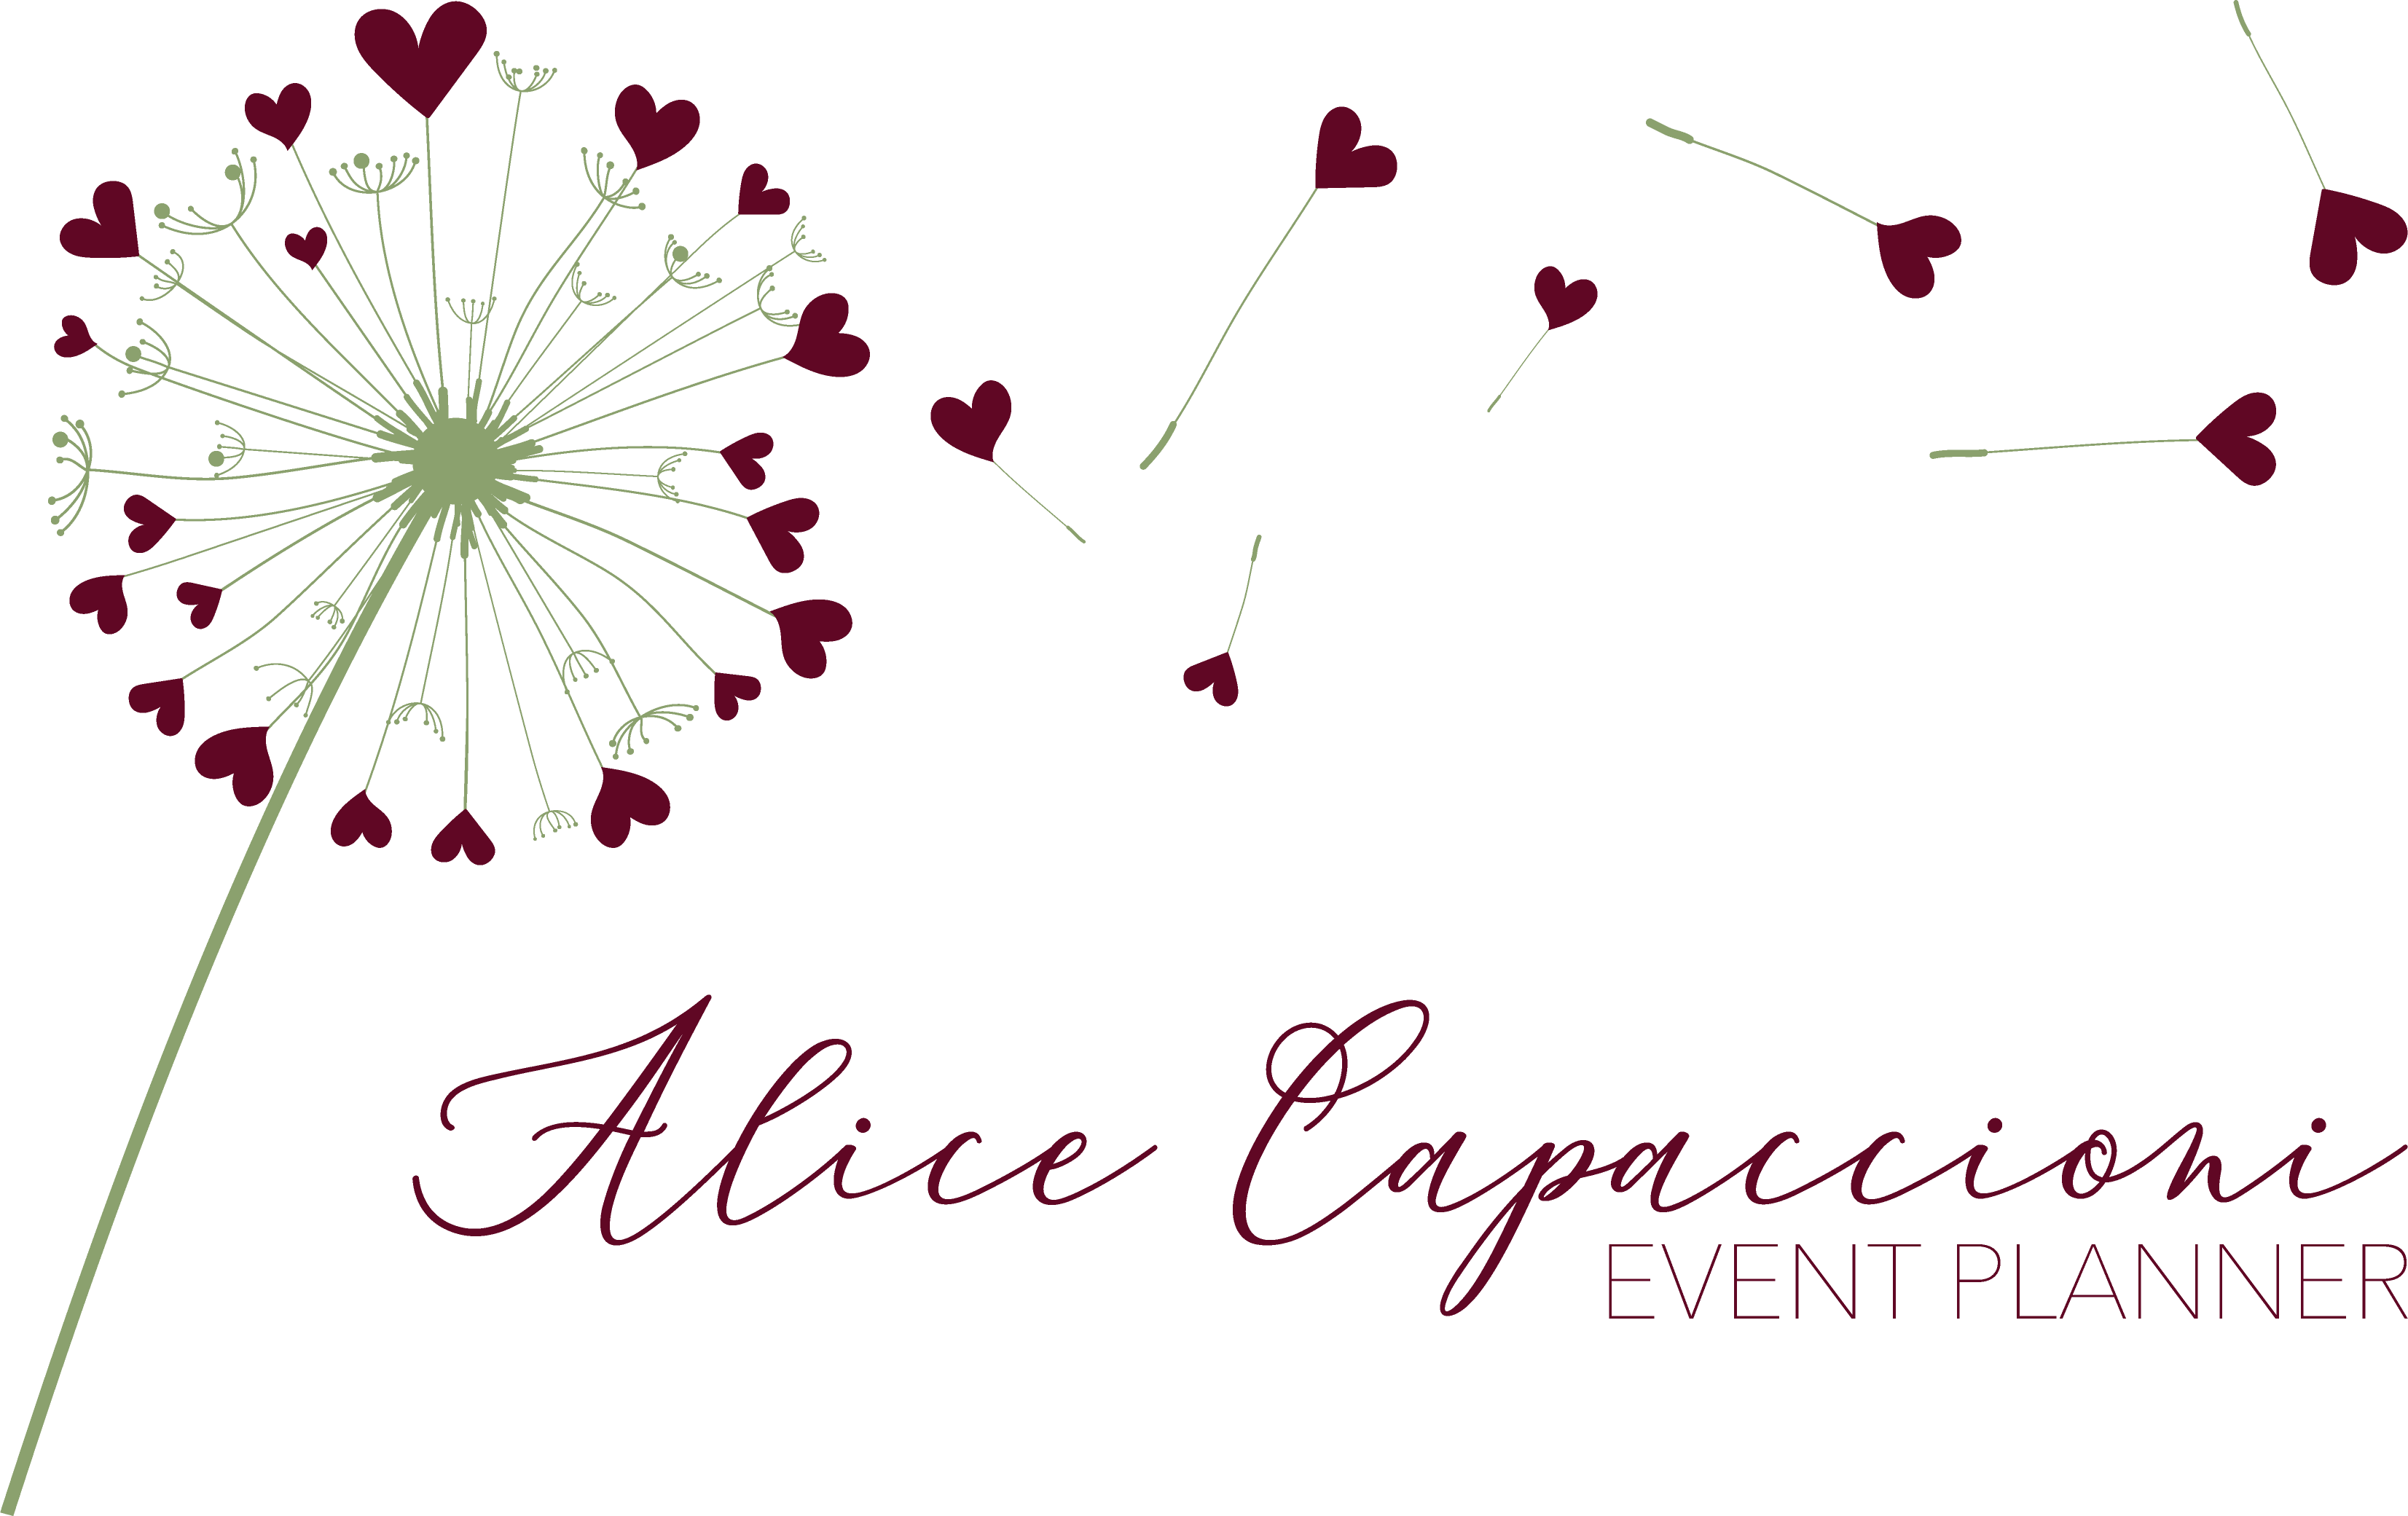 Alice Event Planner